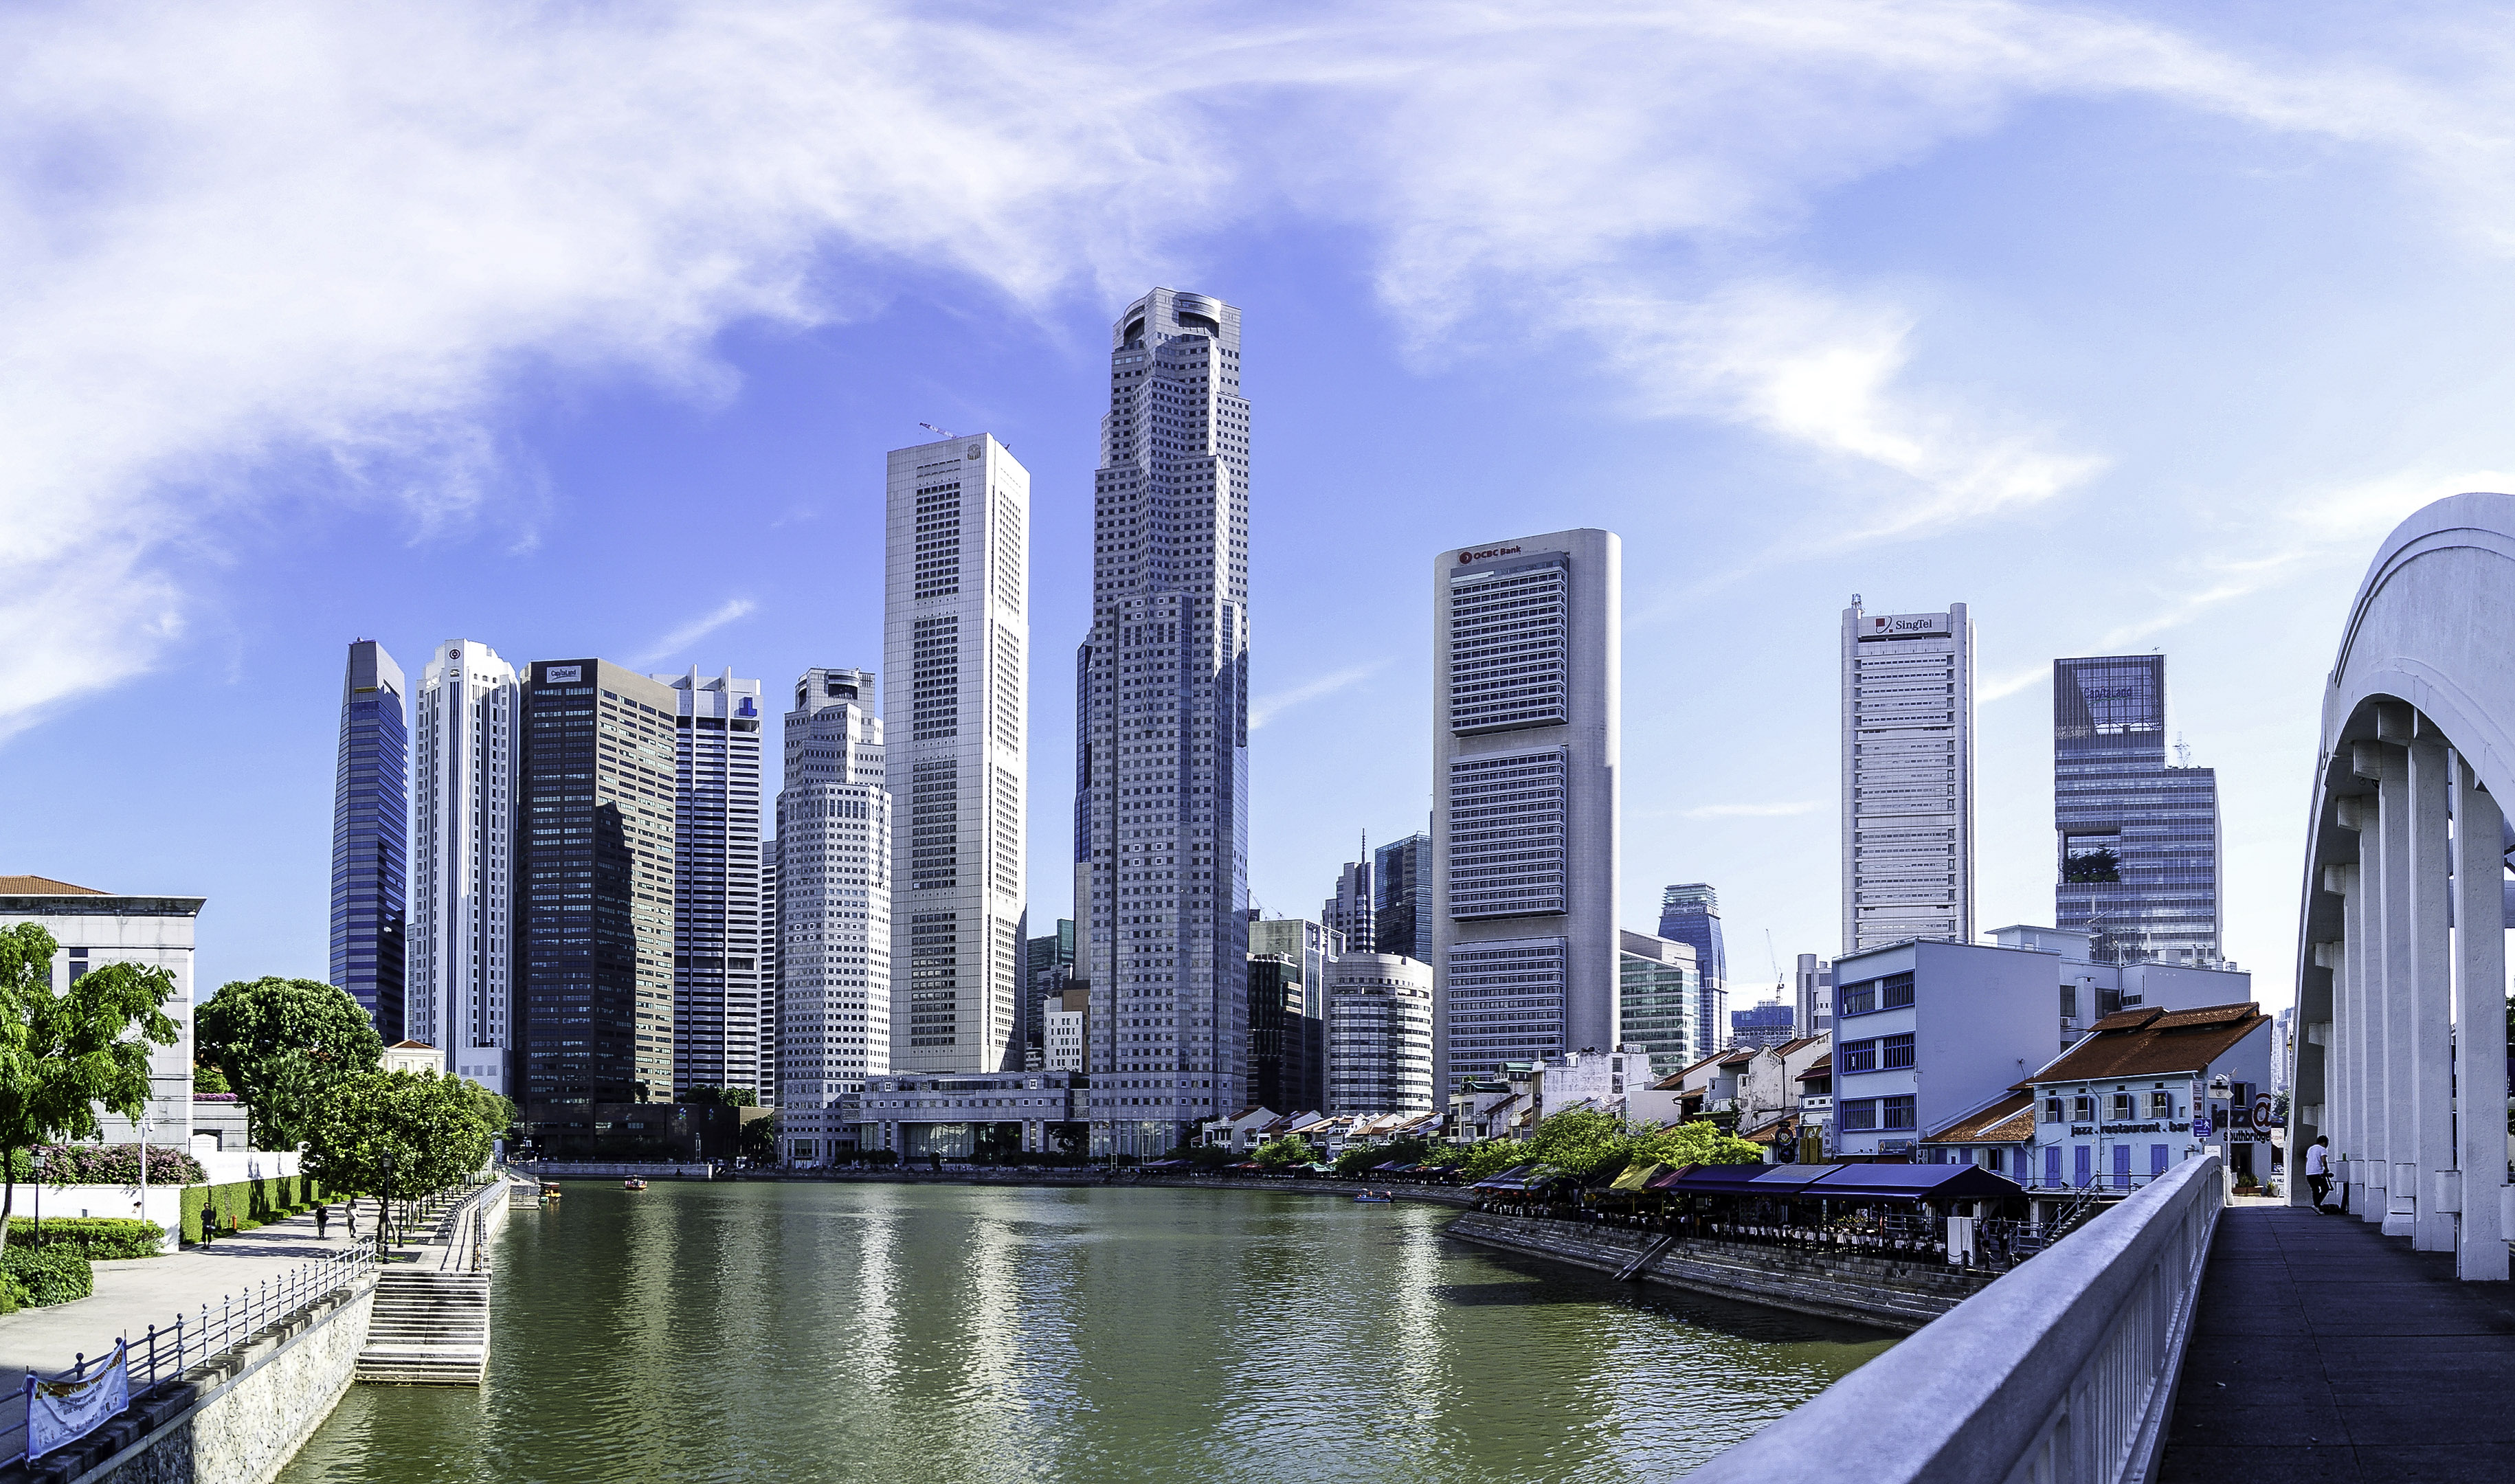 Stock Chart Singapore: Singapore buildings skyscrapers and skyline - Free Public Domain ,Chart